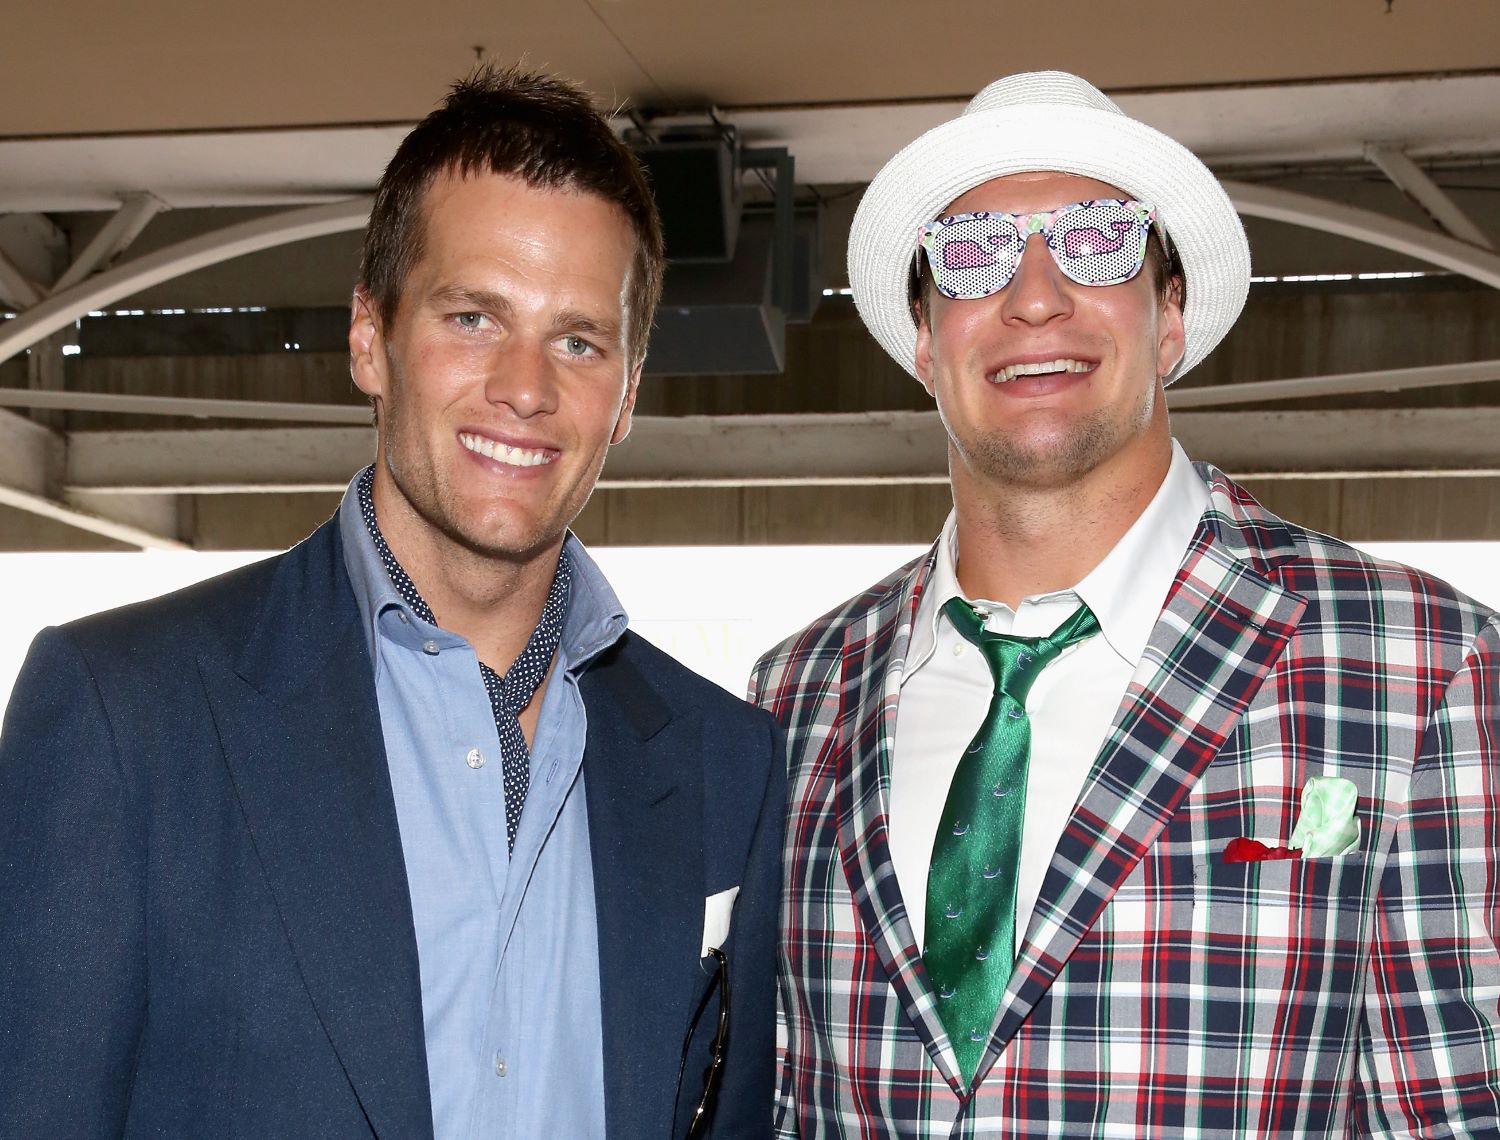 Tom Brady and Rob Gronkowski have shared plenty of memorable moments, but Gronk's favorite memory with Brady involves horses and alcohol.